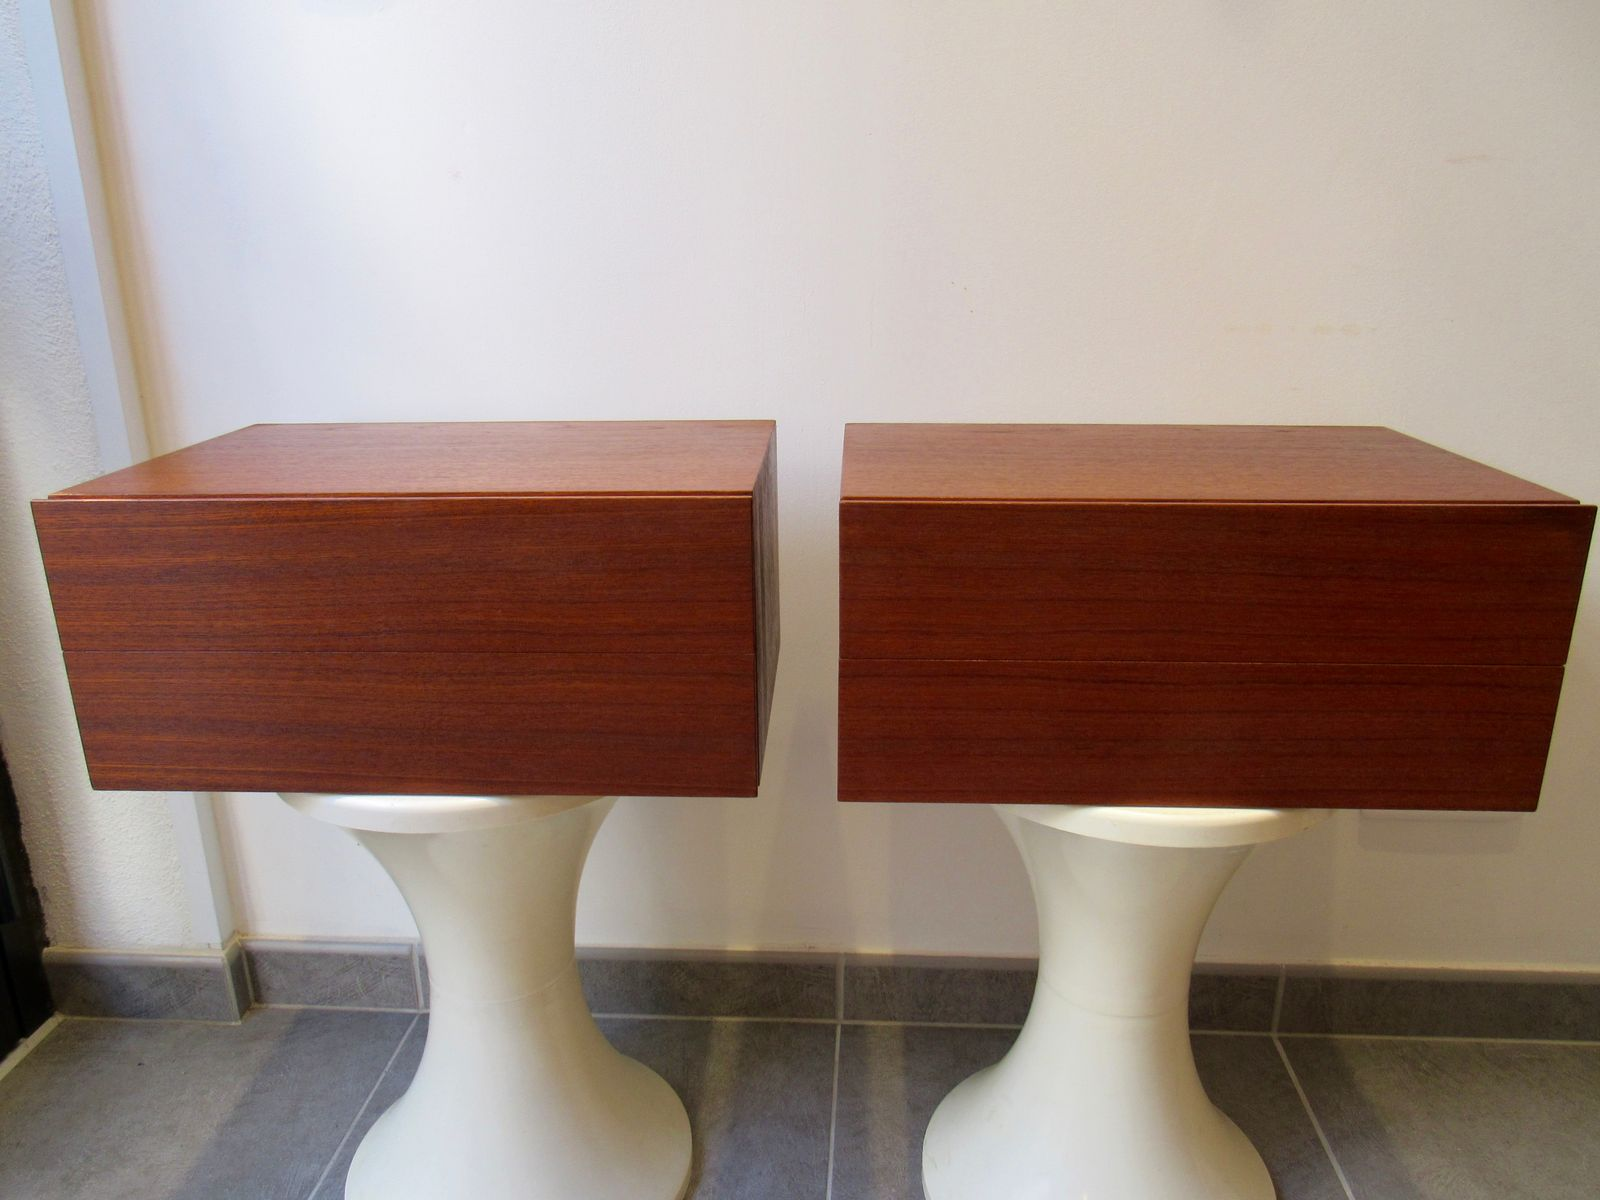 Mounted Bedside Table Teak Veneer Wall Mounted Bedside Tables 1960S Set Of 2 For Sale